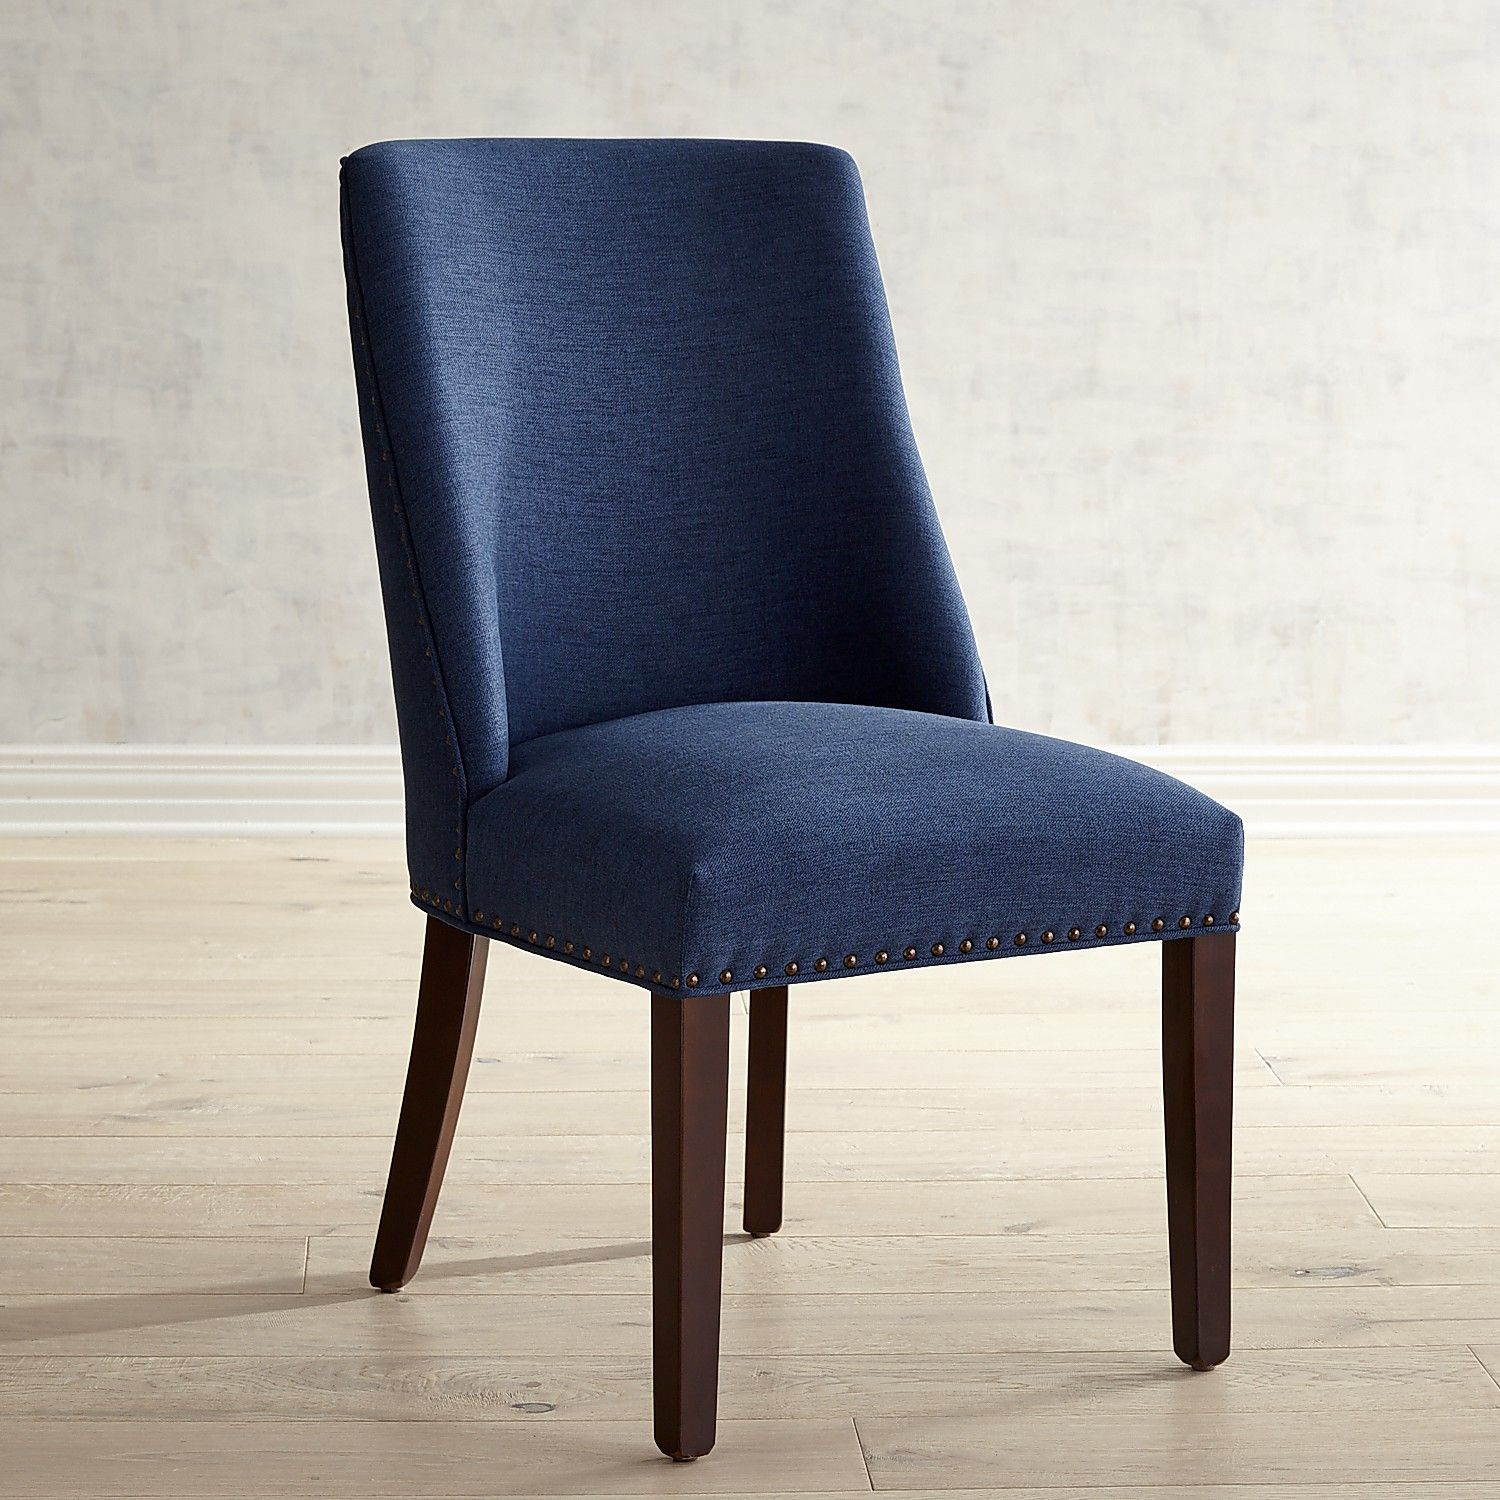 Corinne Pierformance Baltic Blue Dining Chair With